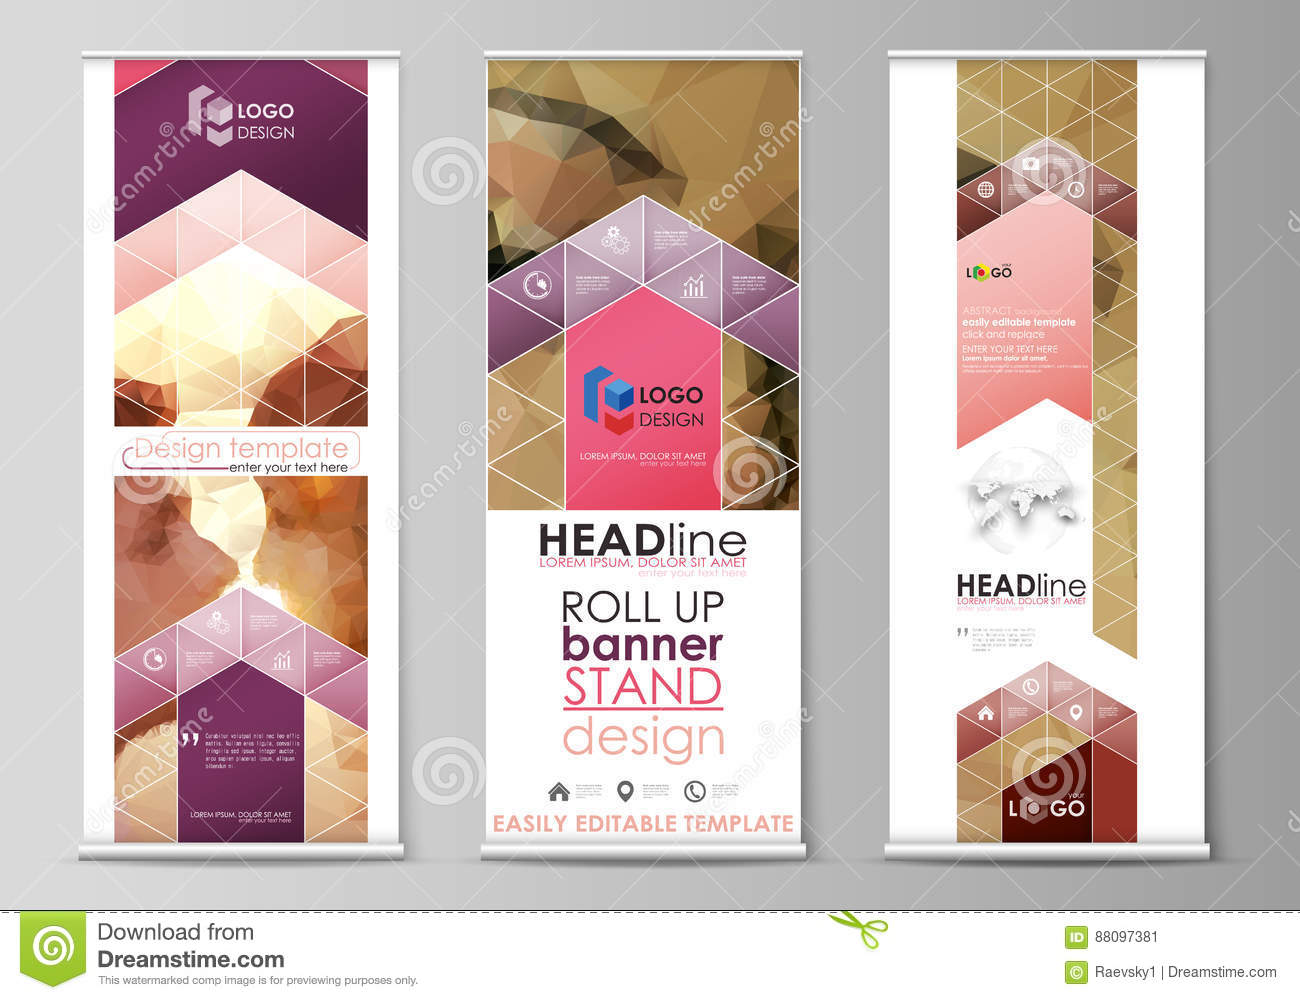 roll up banner stands abstract geometric design templates